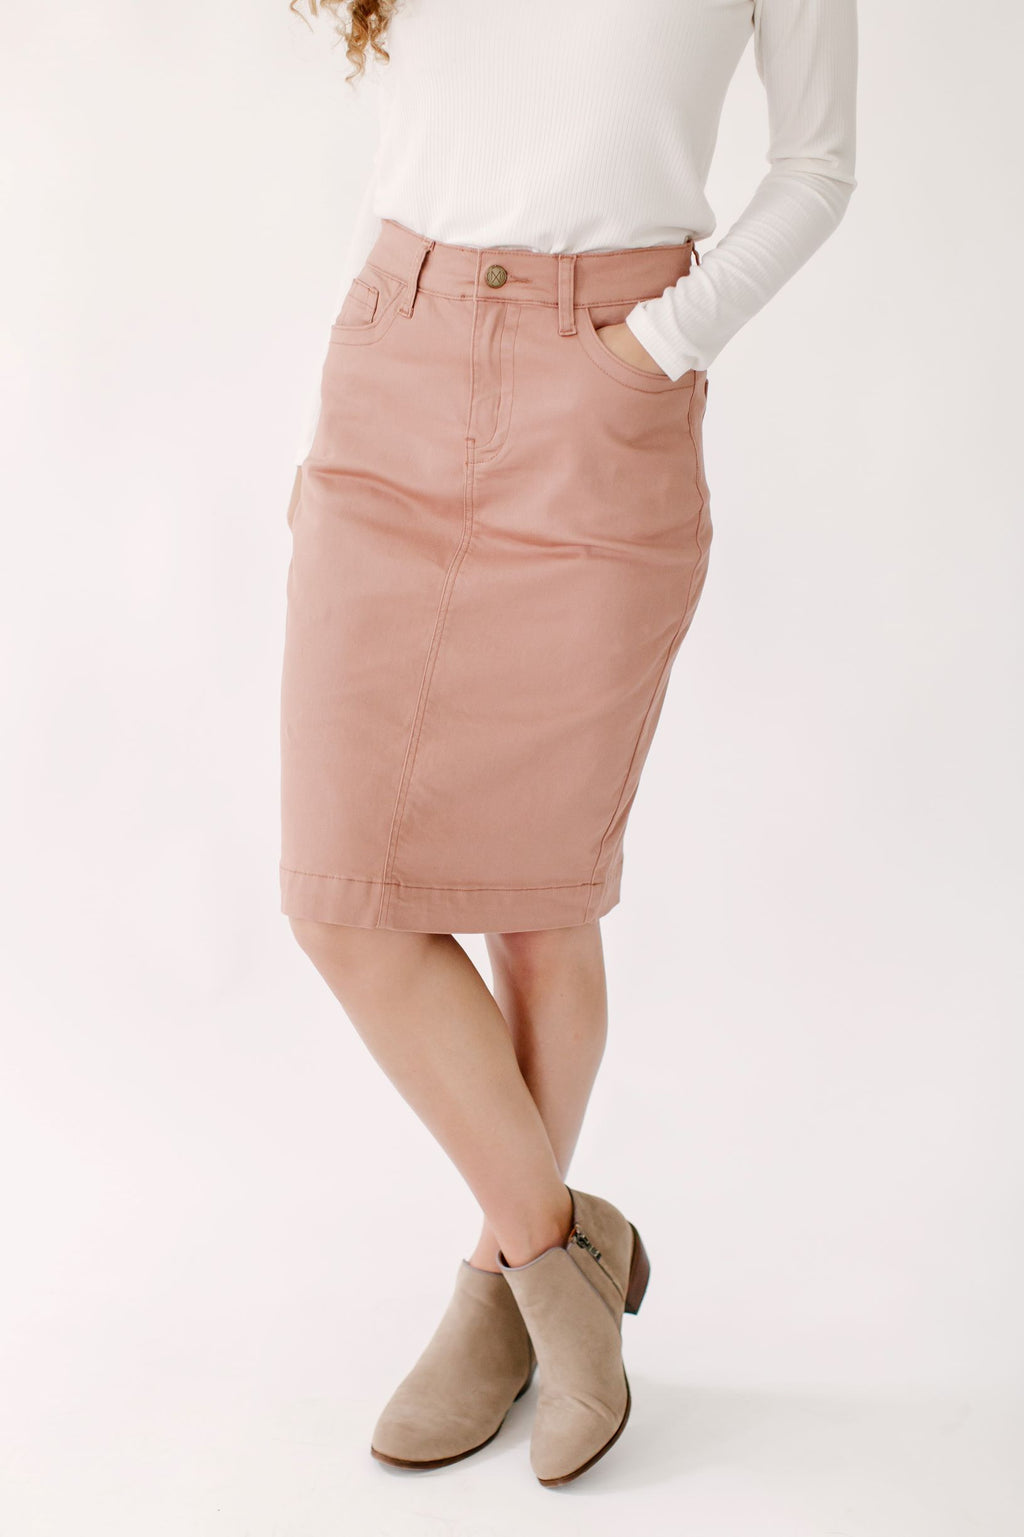 'Leah' Denim Skirt in Vintage Rose